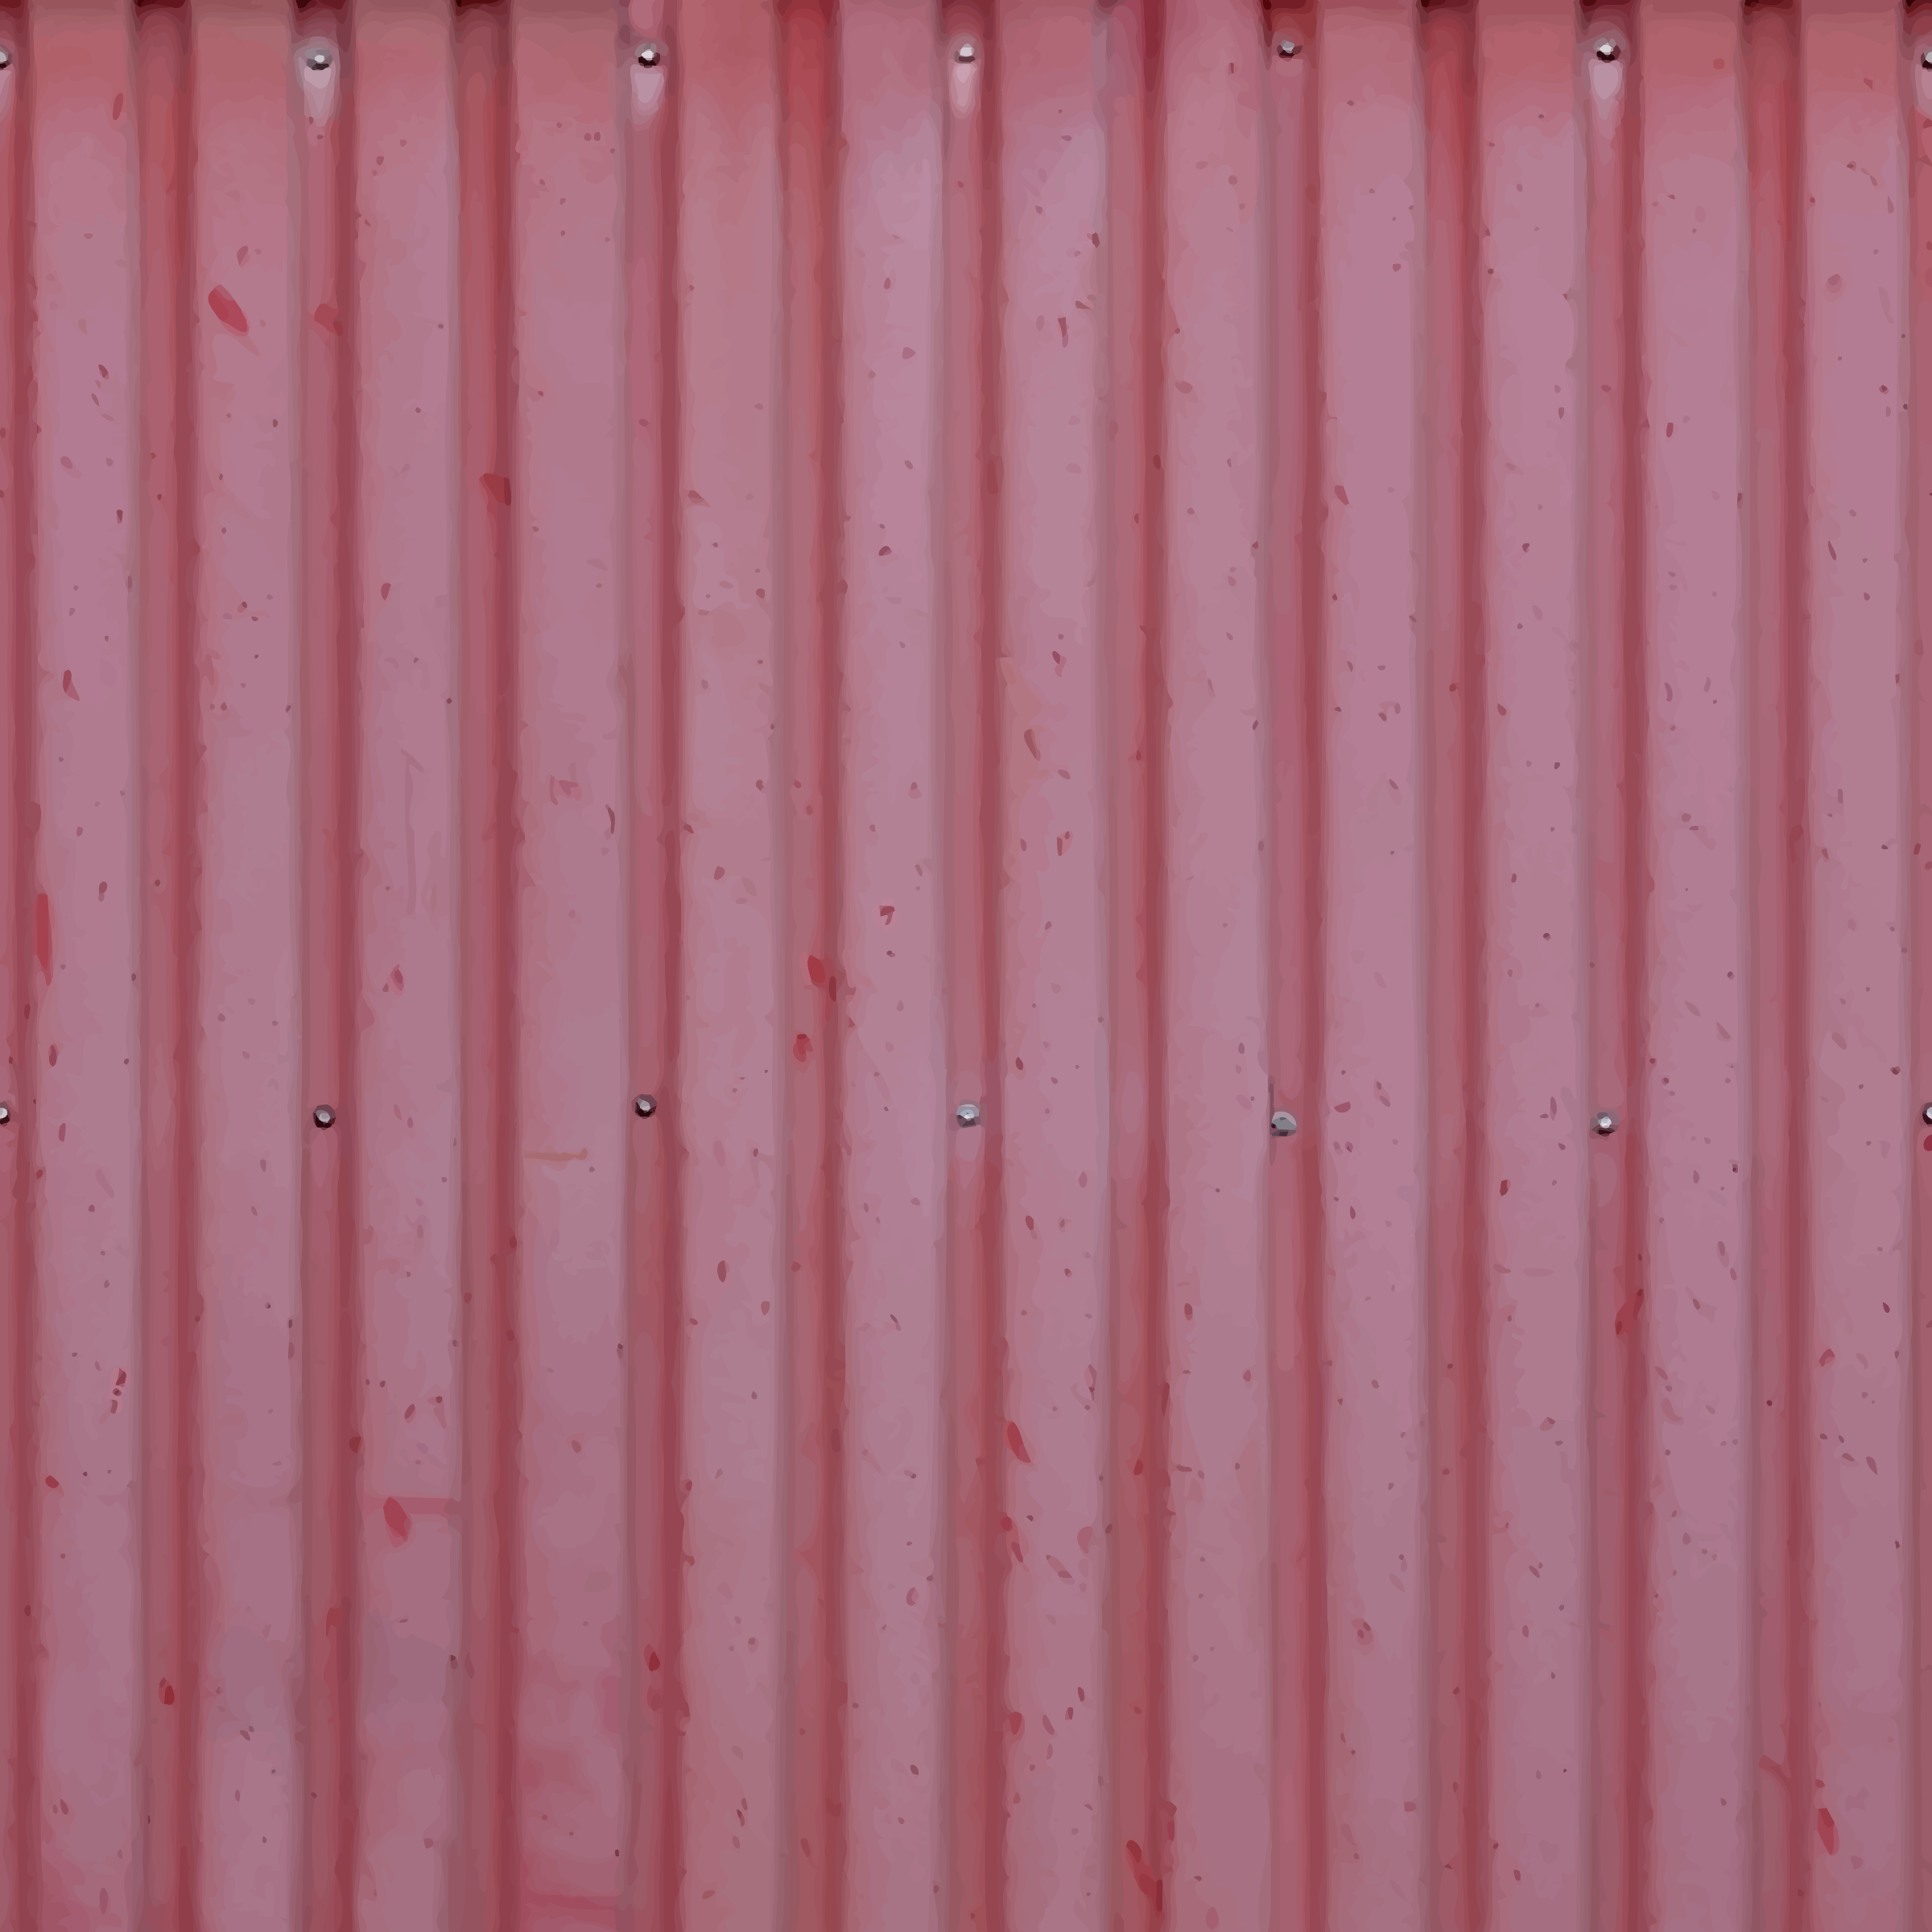 Corrugated iron by Firkin